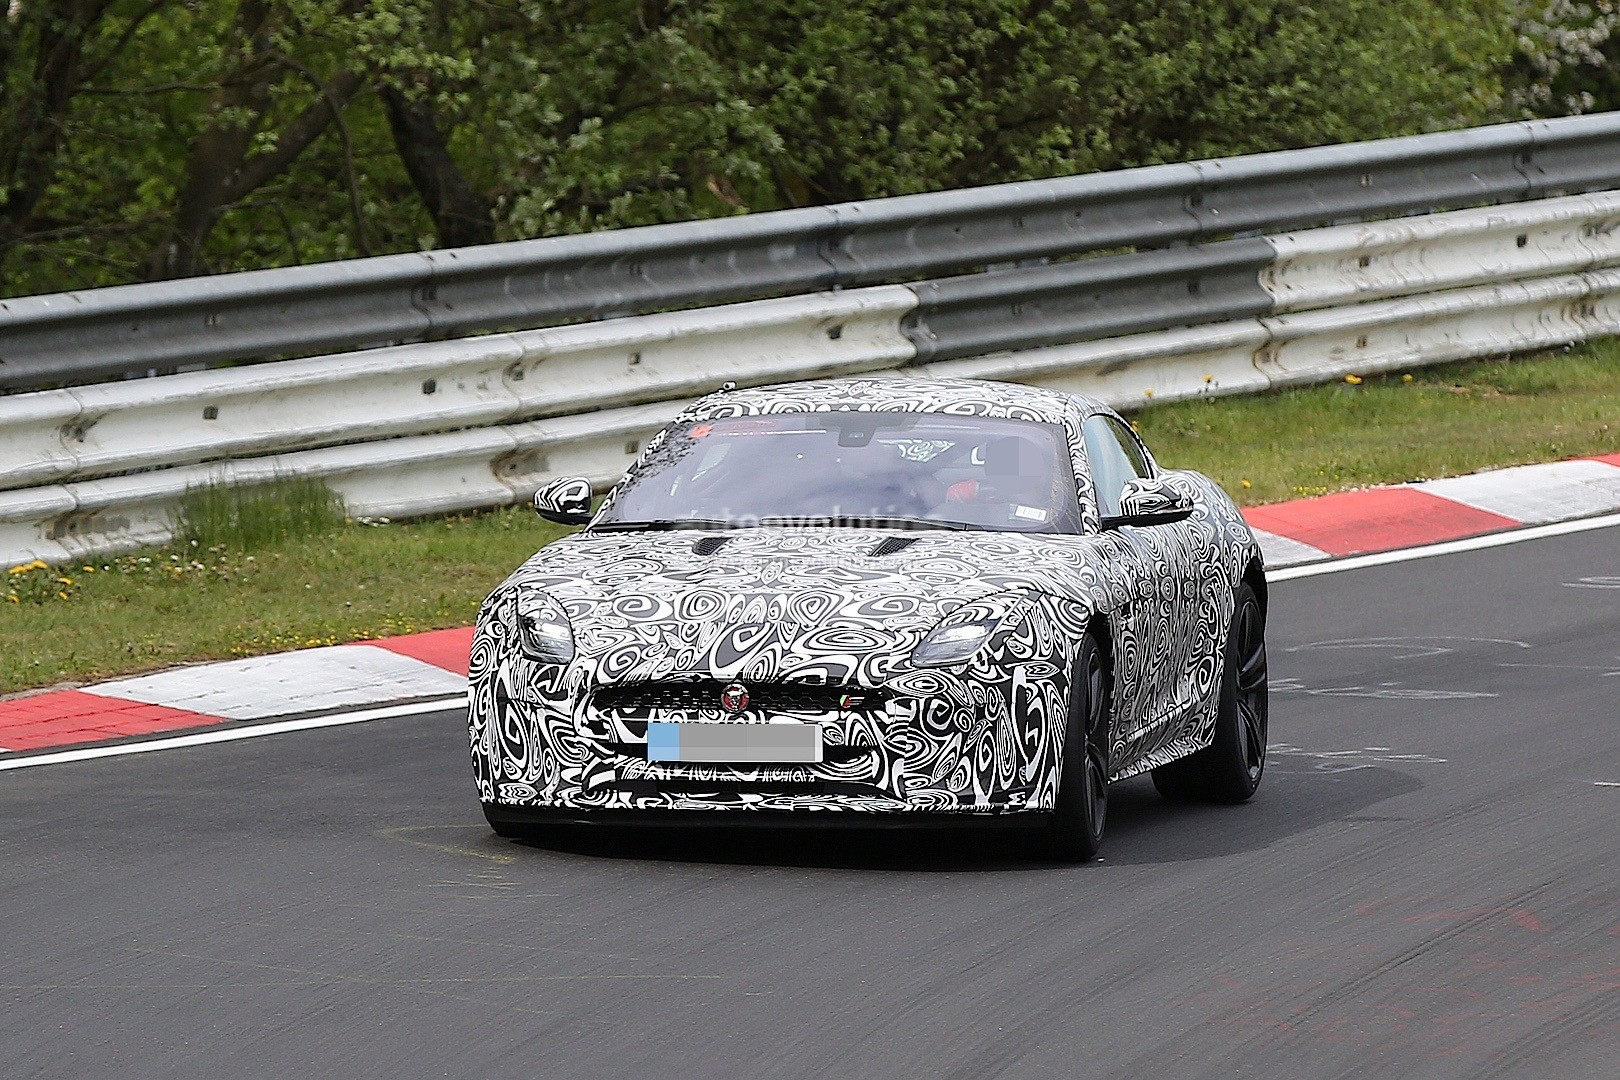 2018 Jaguar F-Type Facelift Flying on Nurburgring, Aiming for